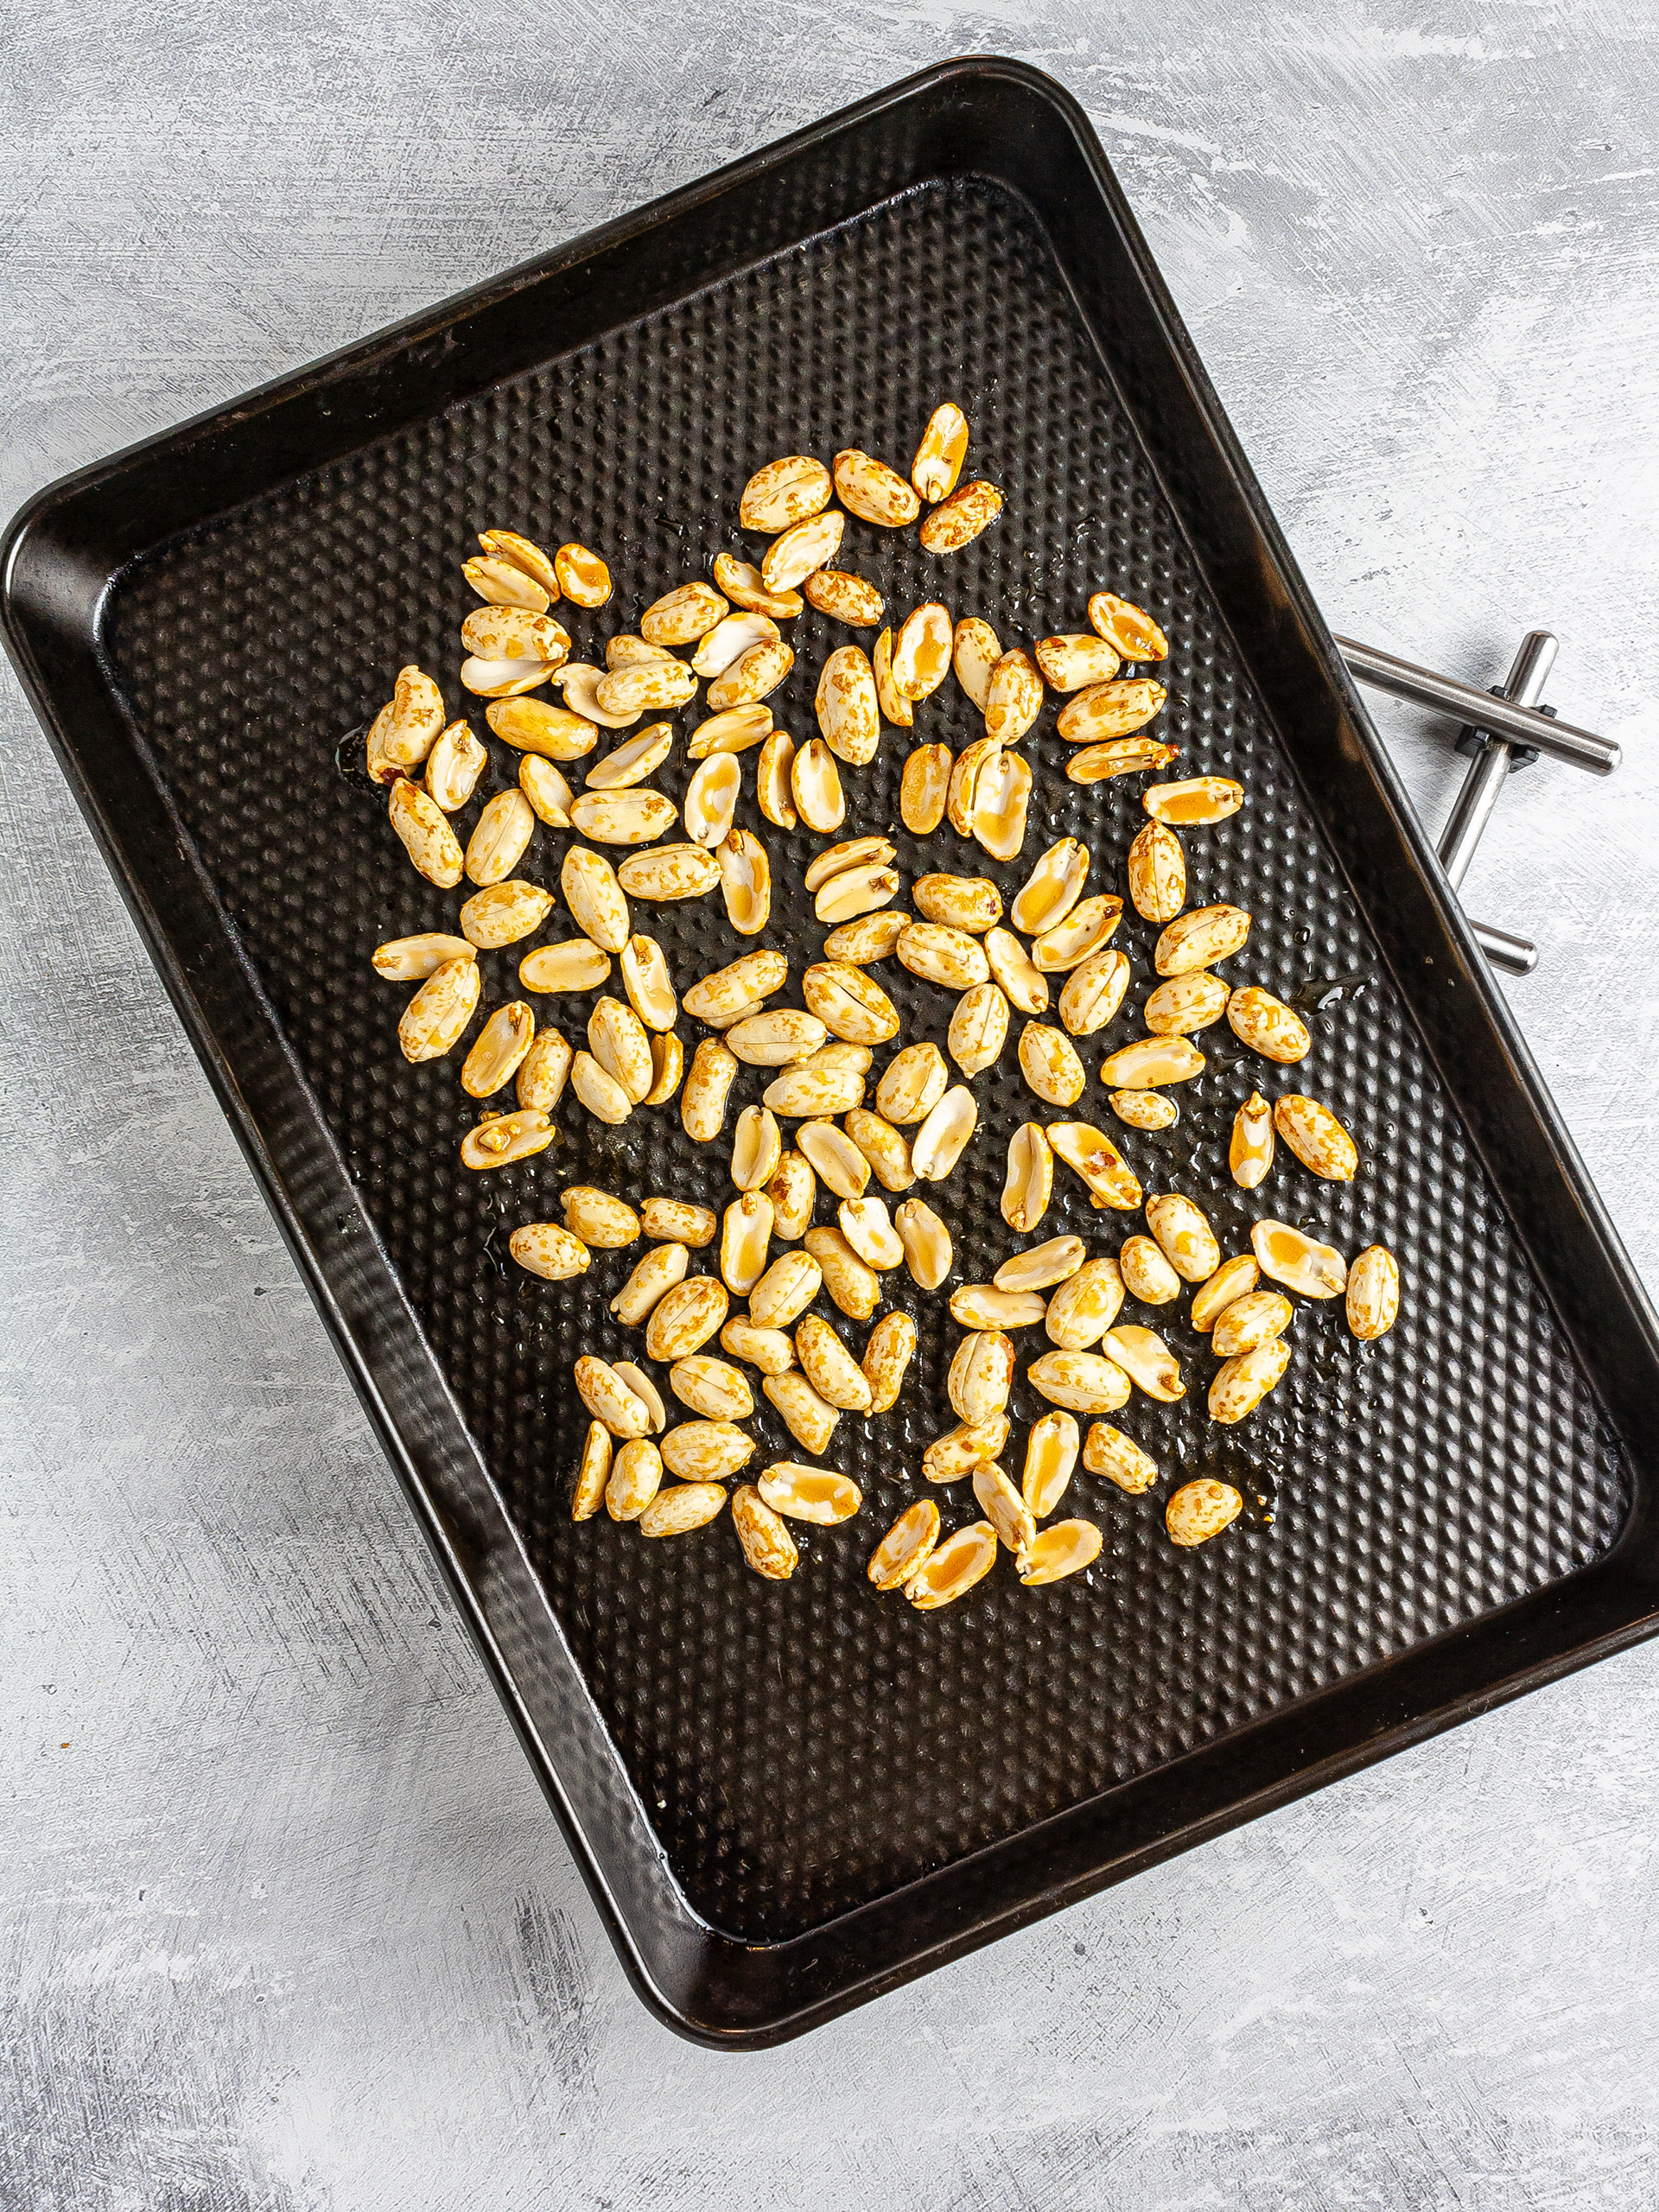 Roasted peanuts with maple